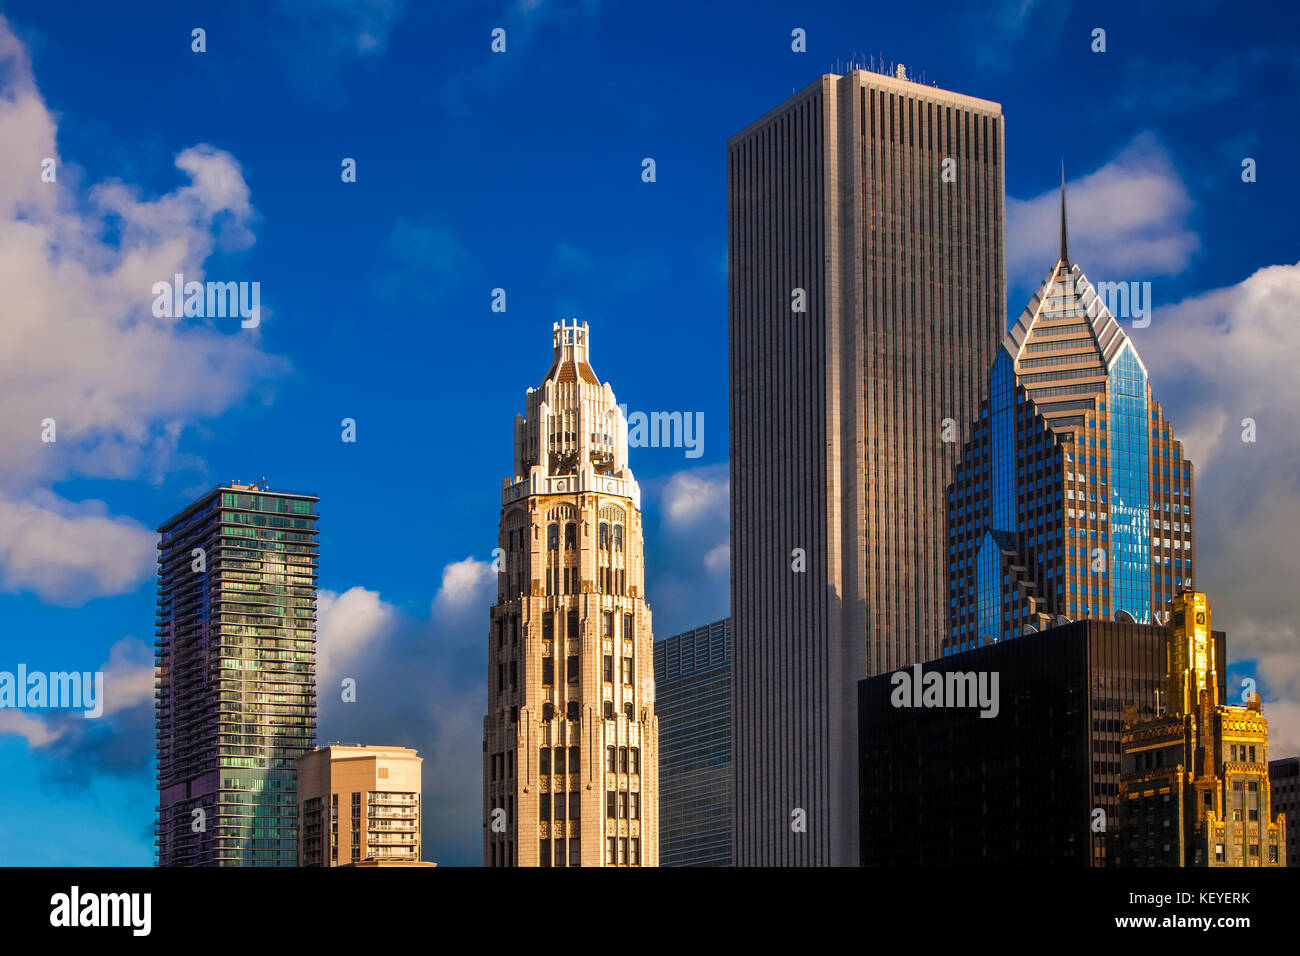 Variety of architectural styles represented in this view of the Chicago skyline - Stock Image